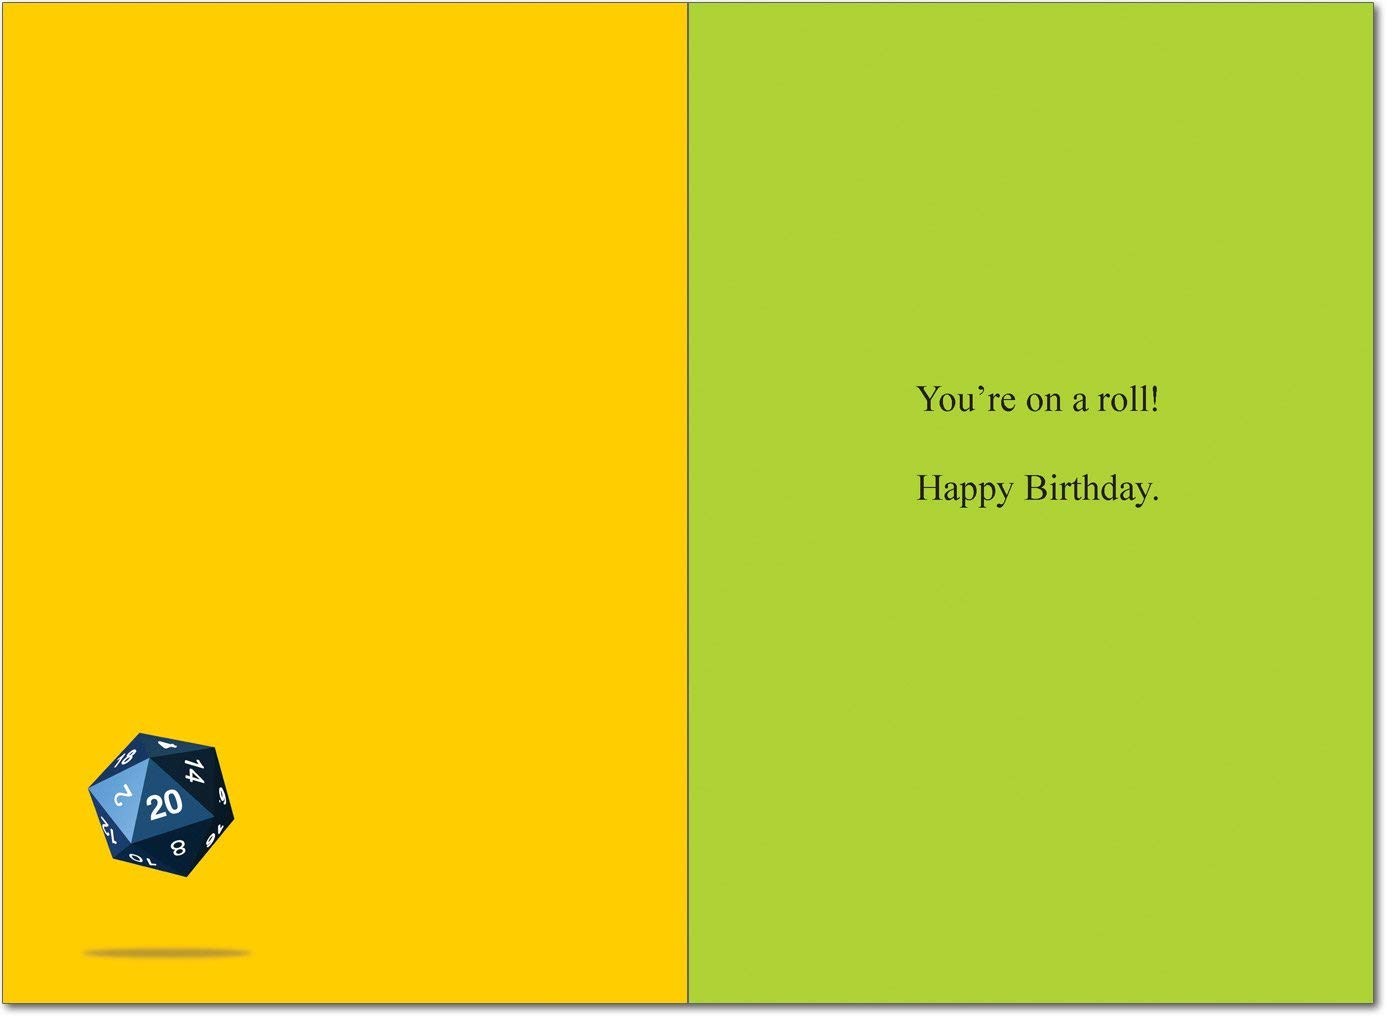 dungeons and dragons birthday card ; 512r6brVpwL